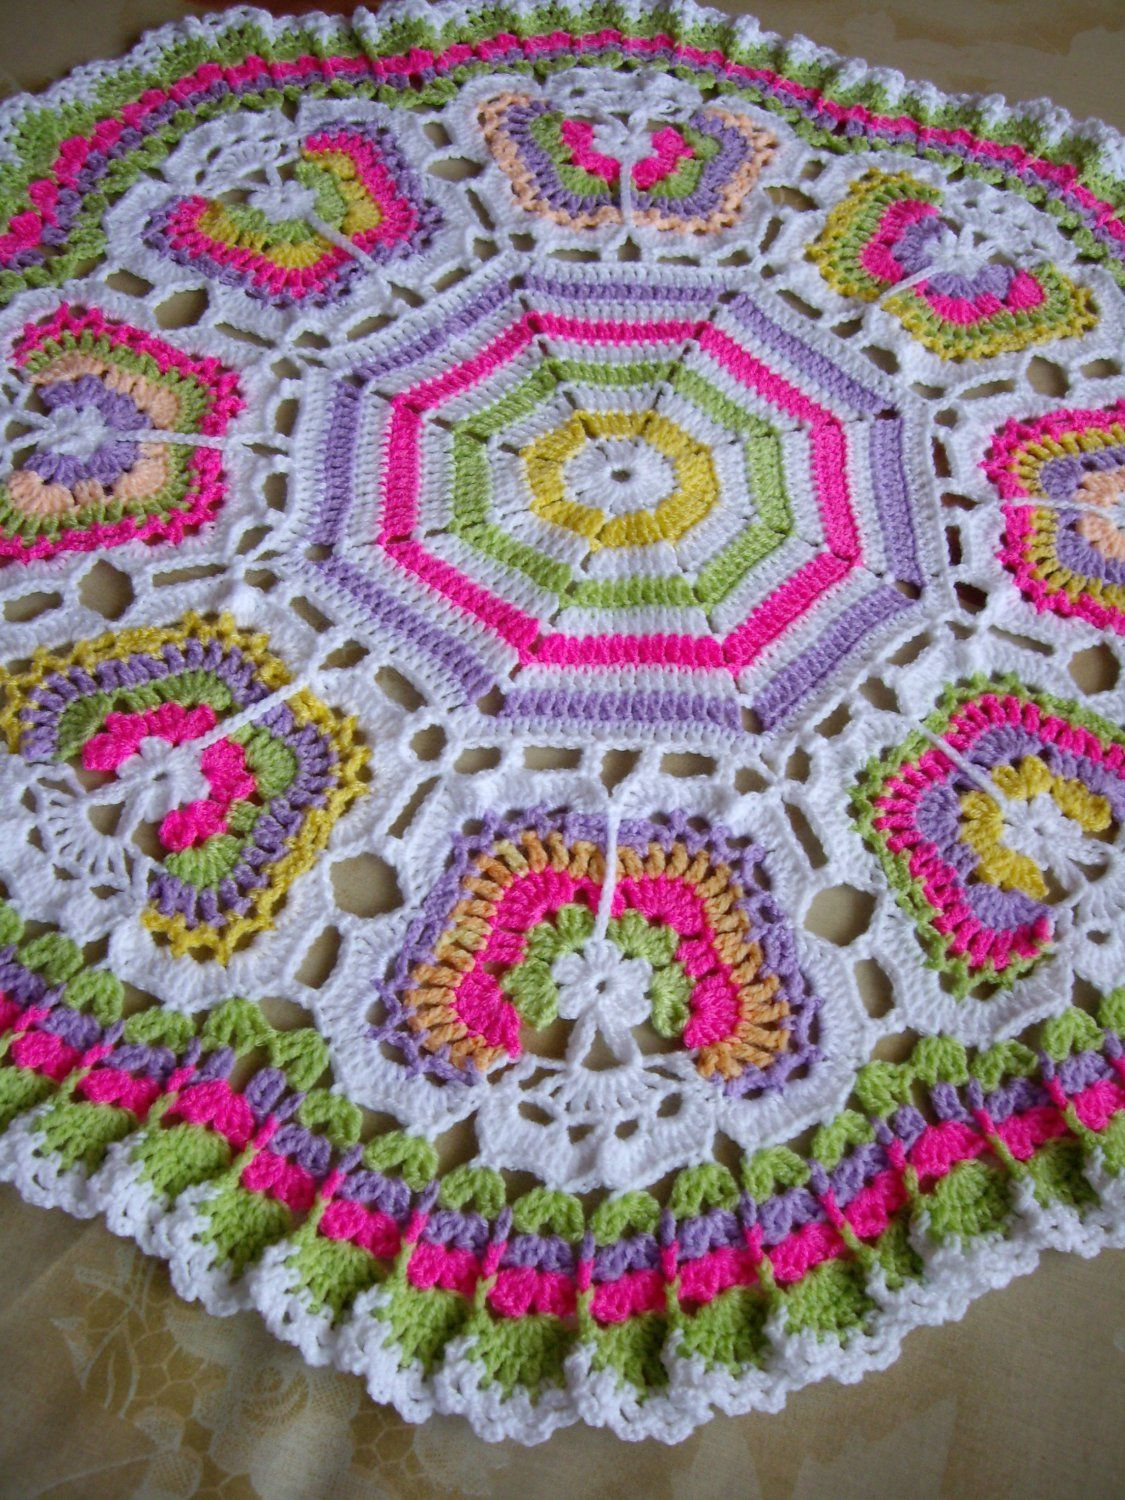 Butterflies+Crochet+Blanket...Granny+Squares+Baby+Afghan...Colorful+ ...